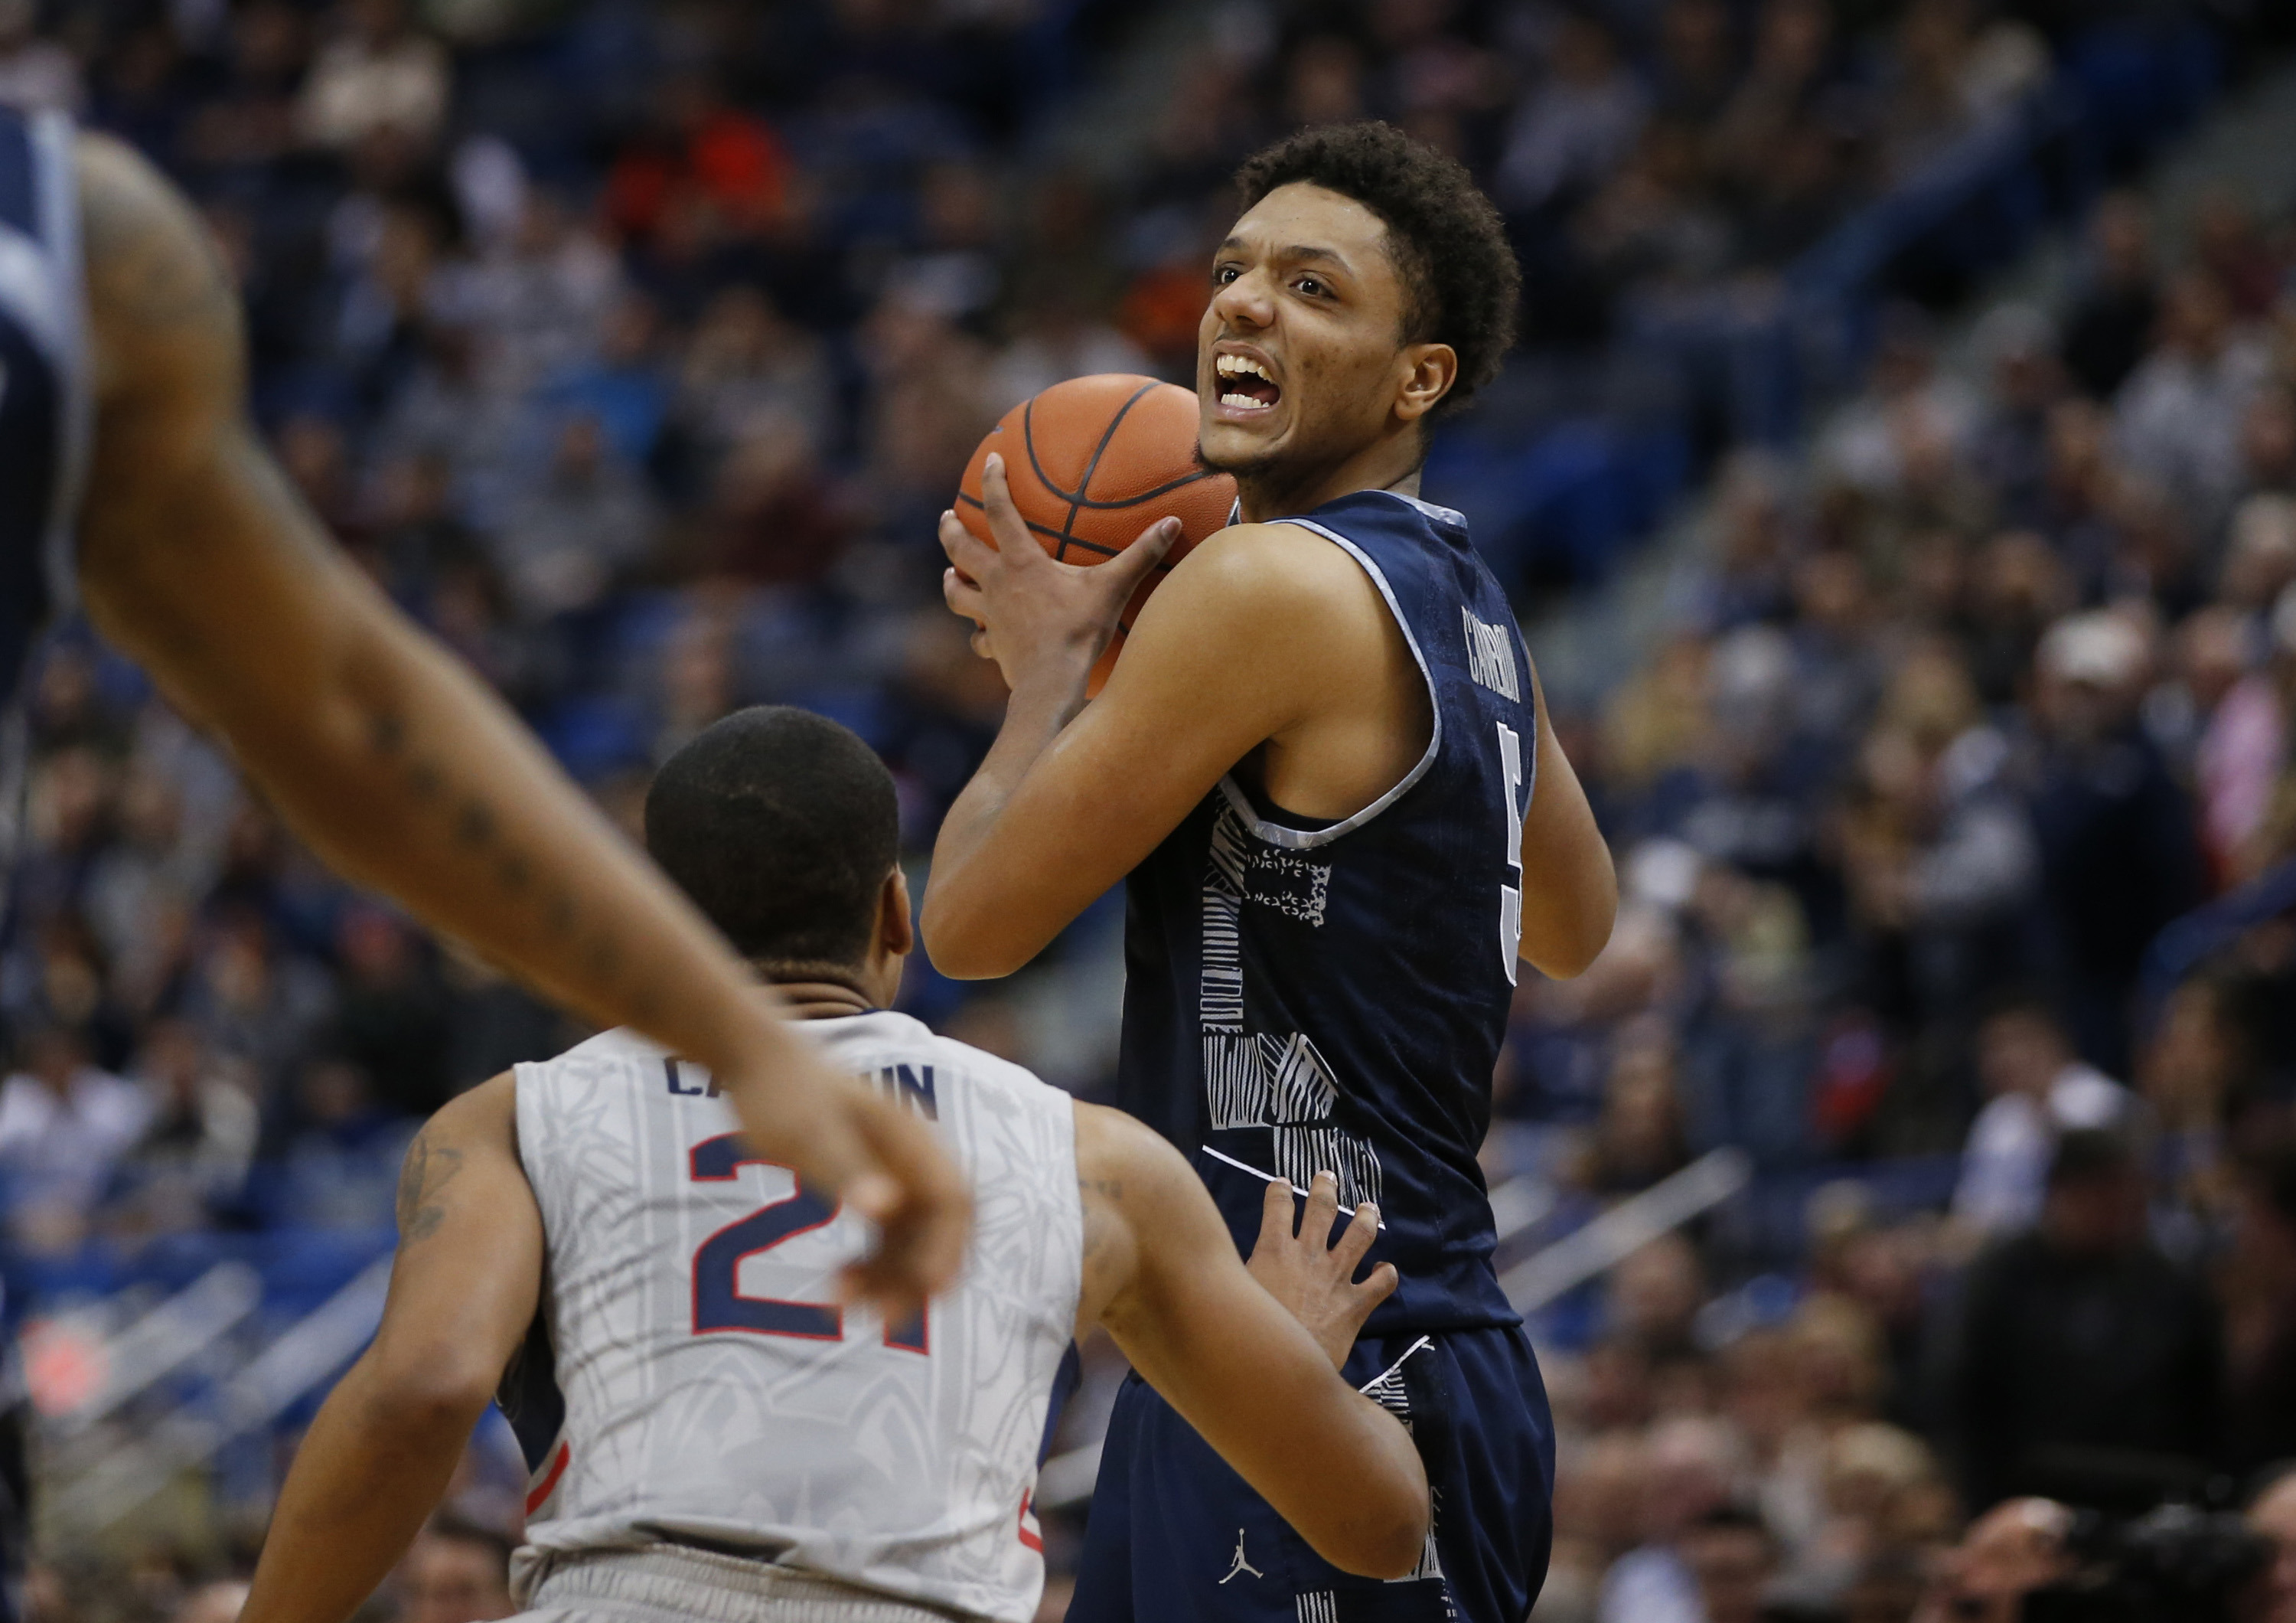 Georgetown used a second half run to take a four-point lead with six minutes left, but UConn outscored the Hoyas 12-2 over the final minutes and hung on for a 68-62 win at the XL Center Saturday afternoon.